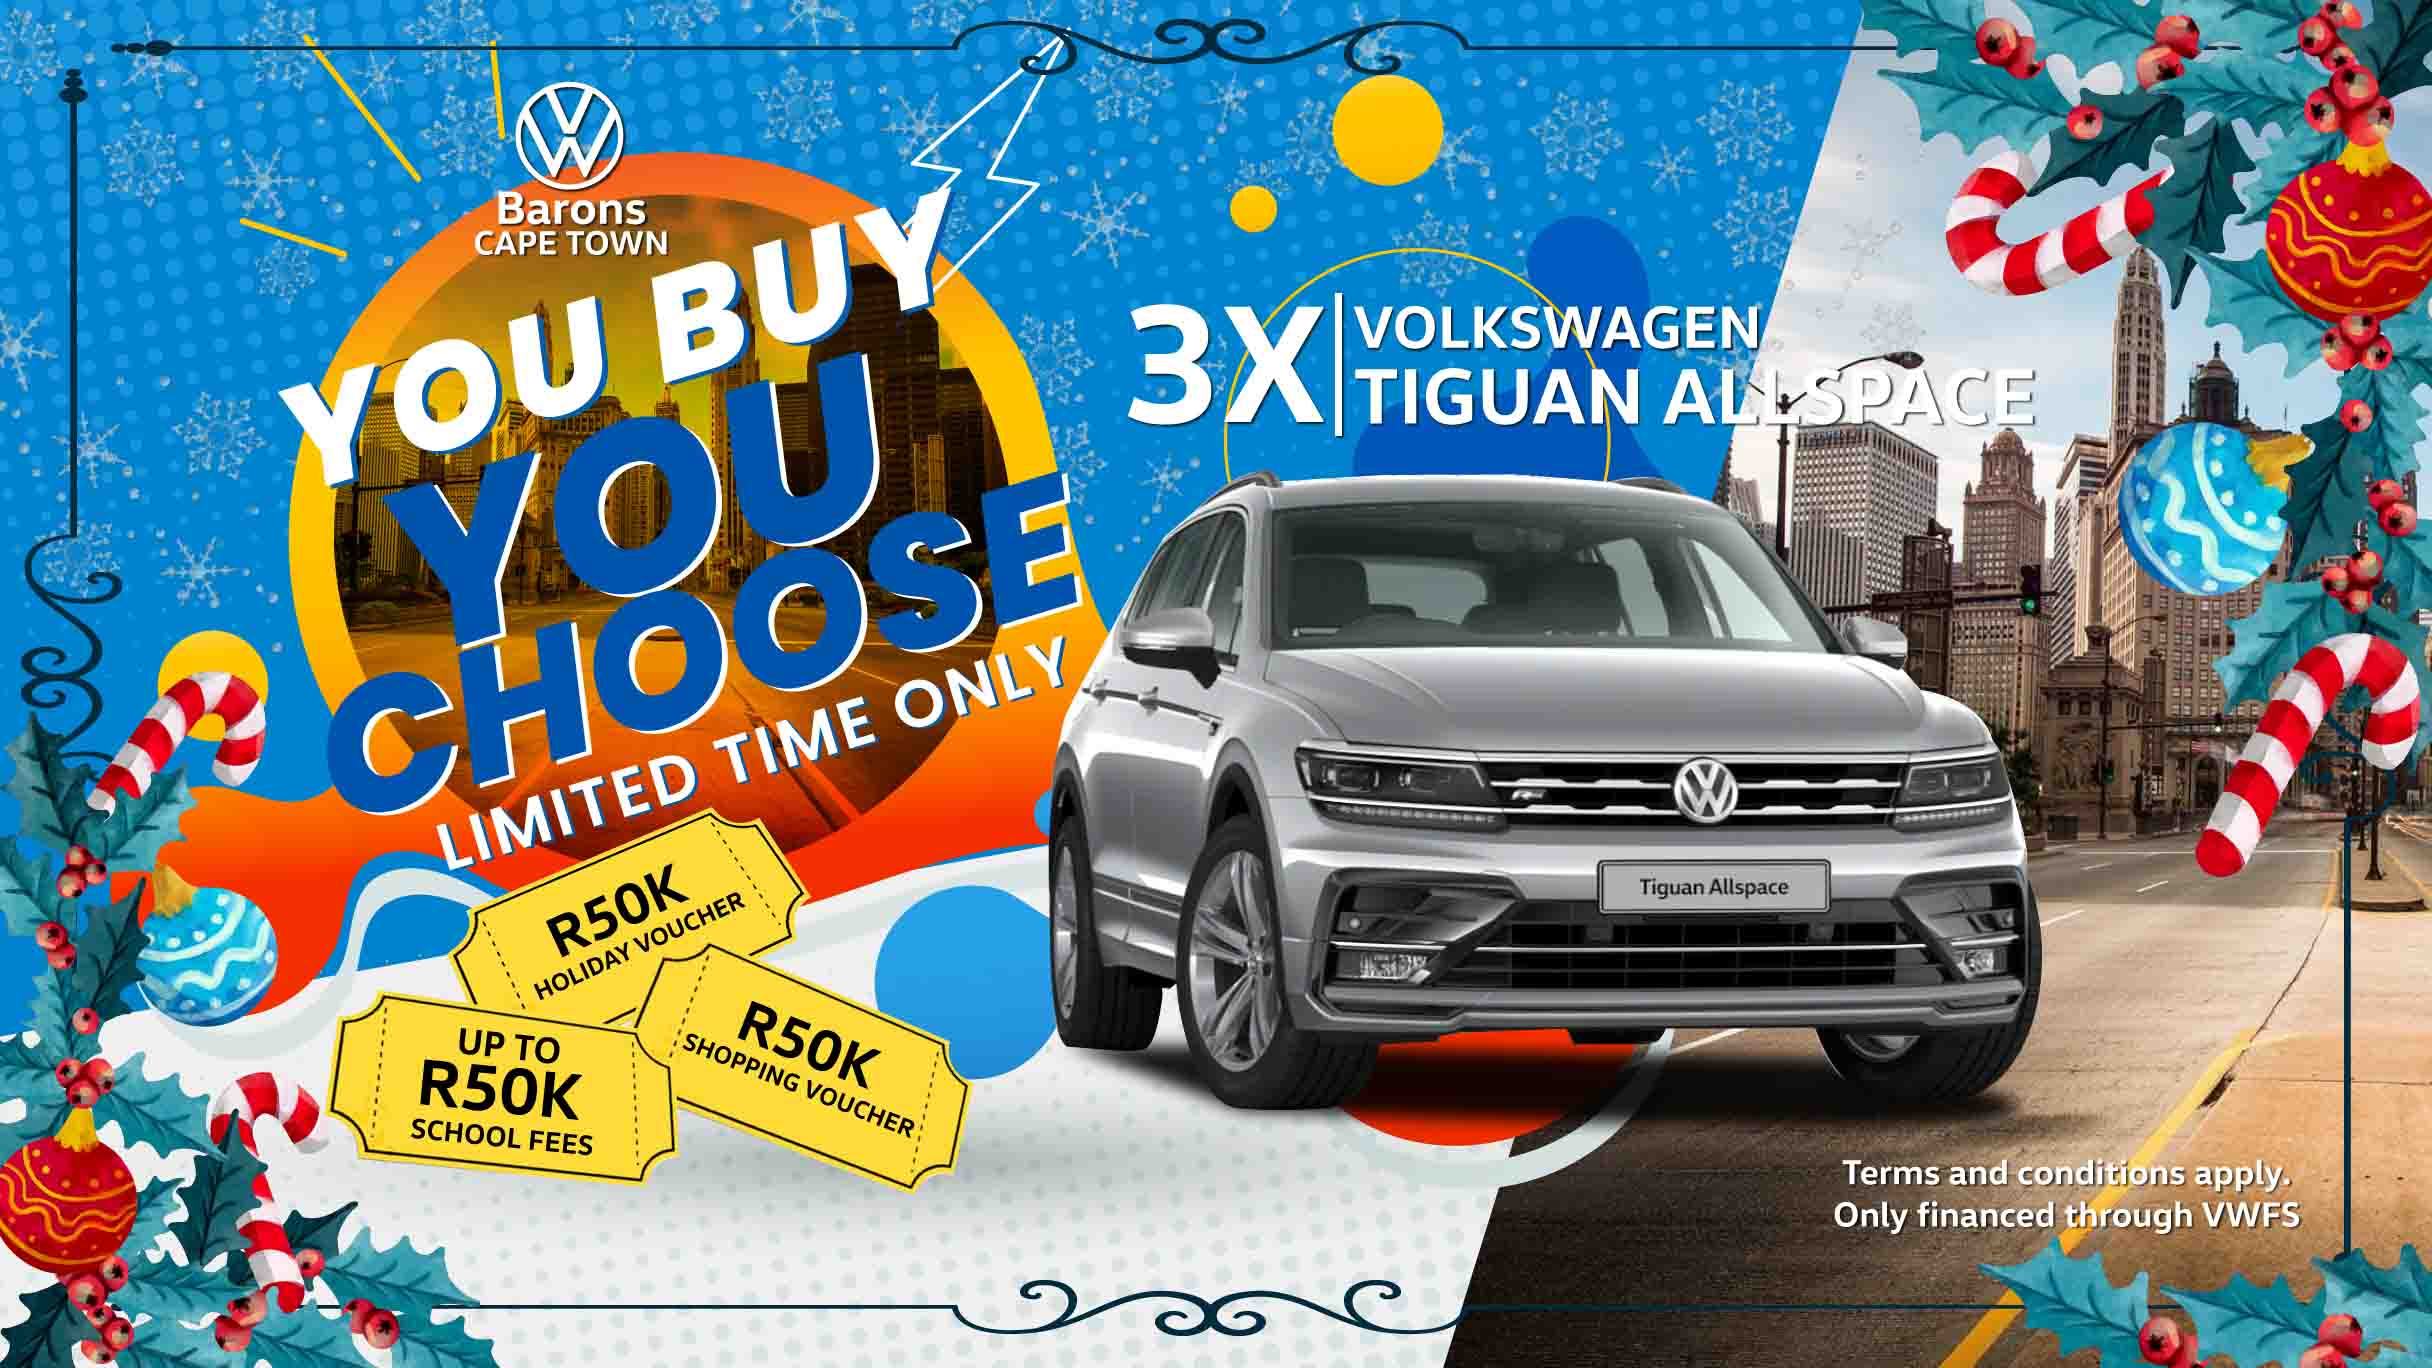 Festive offer on the Tiguan Allspace at Barons Cape Town